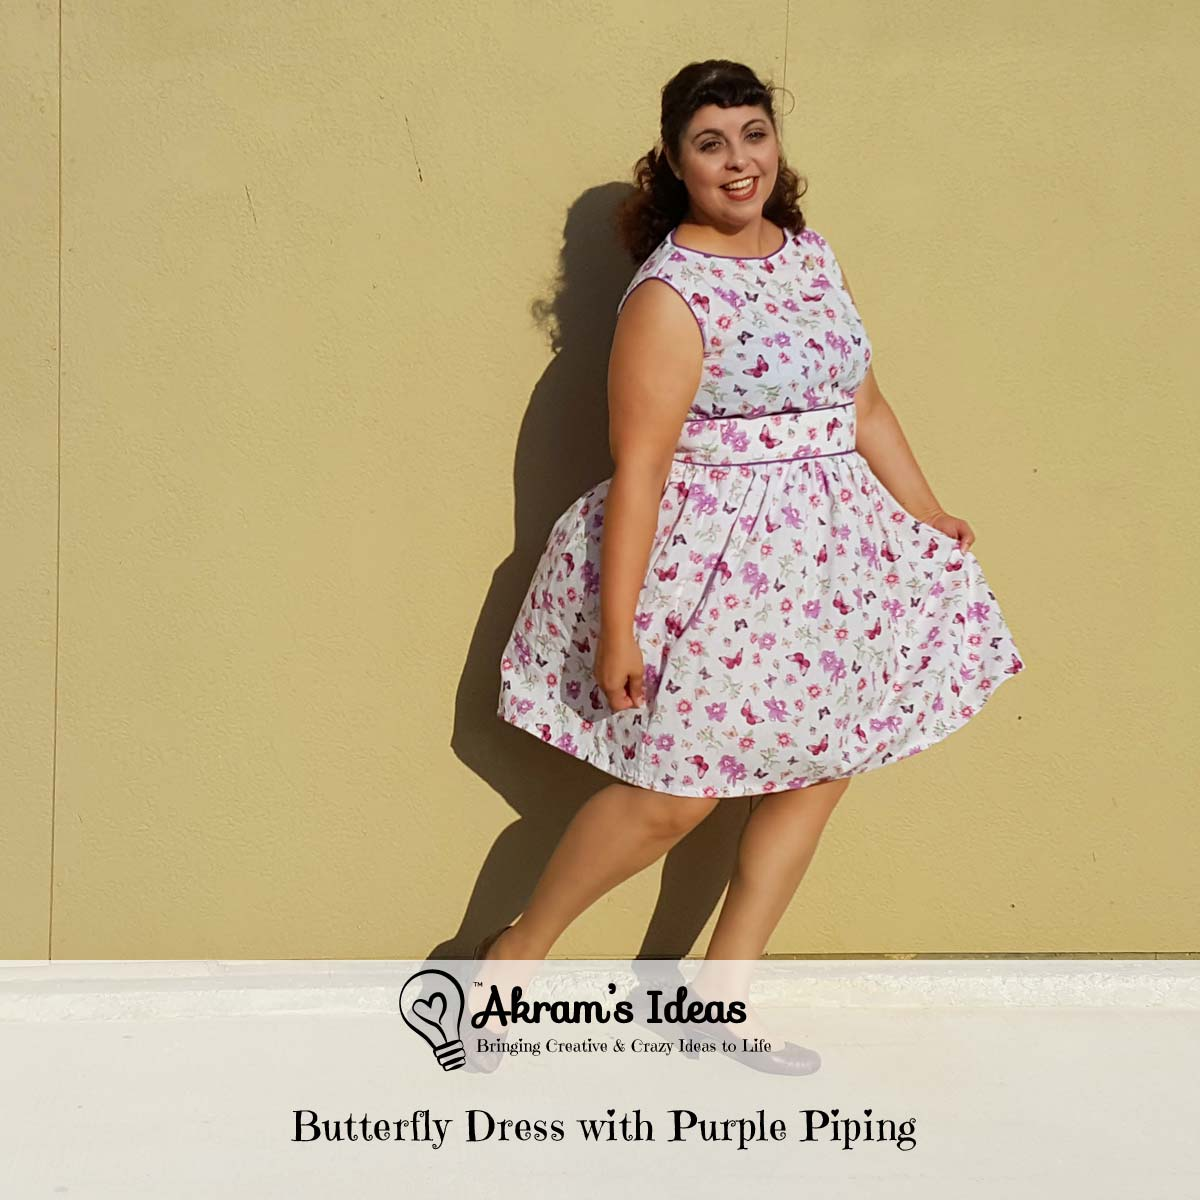 Butterfly Dress with Purple Piping